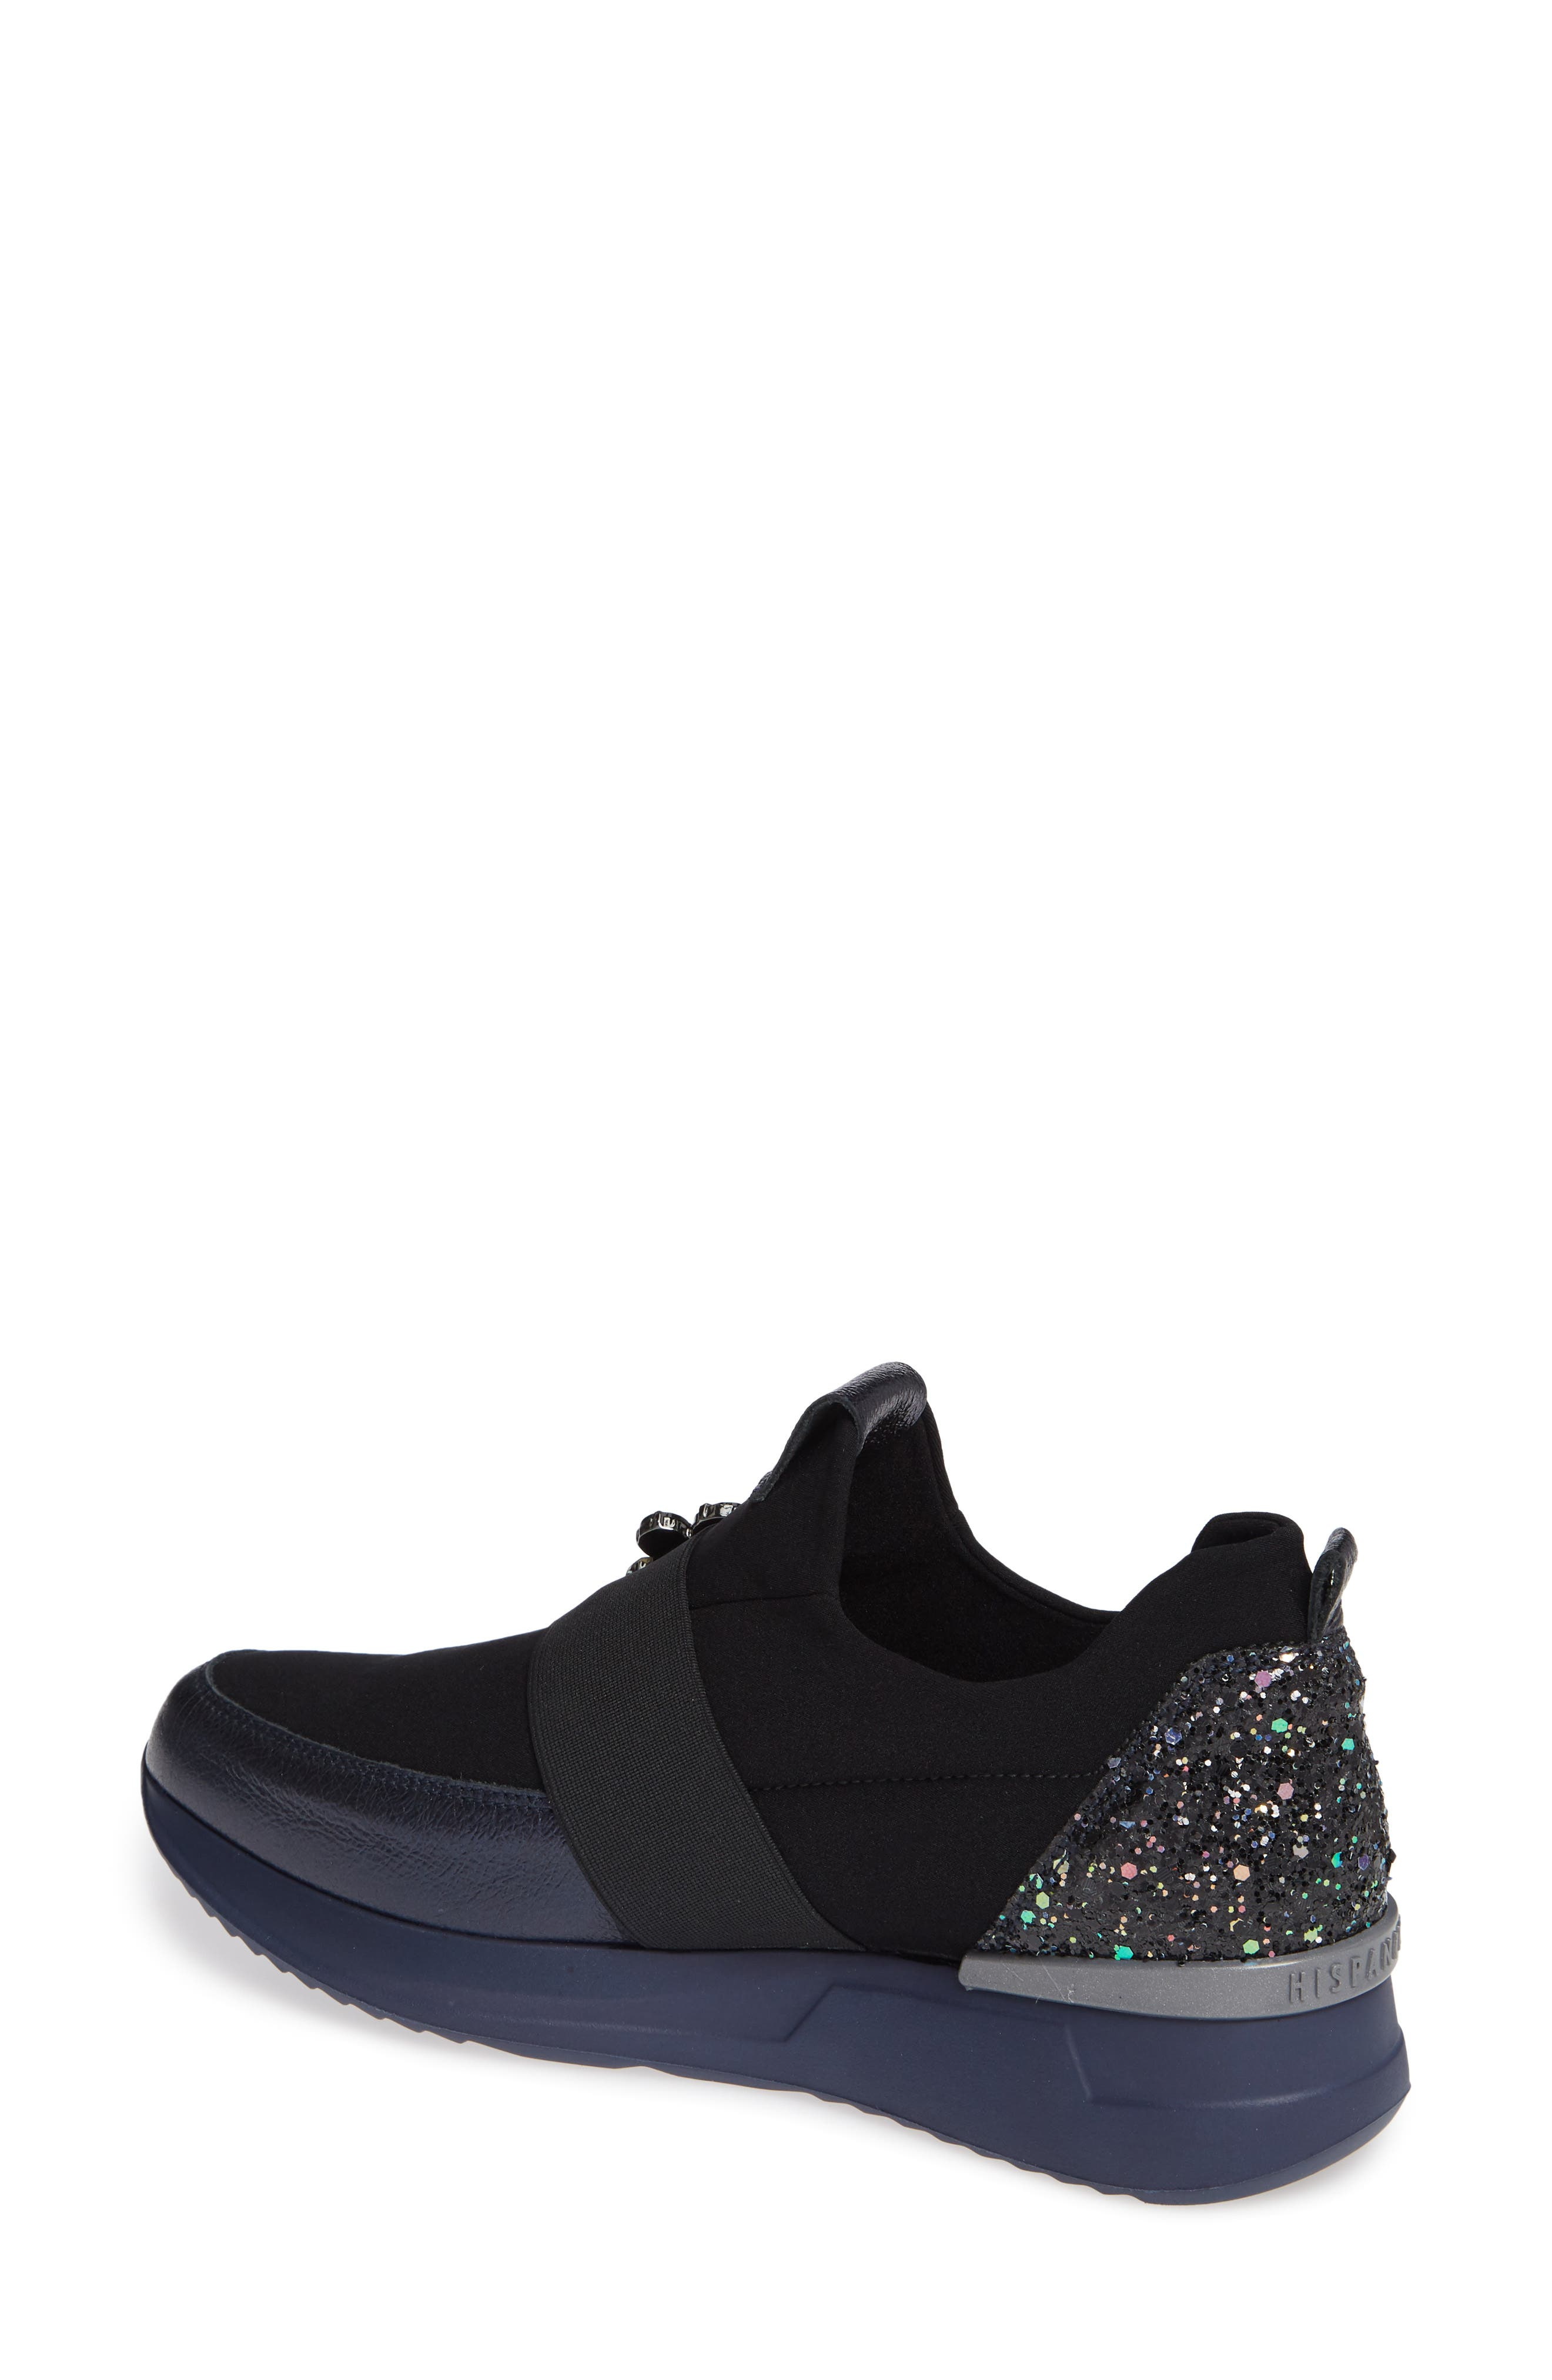 Callen Embellished Sock Sneaker,                             Alternate thumbnail 2, color,                             SHADOW MARINE LEATHER